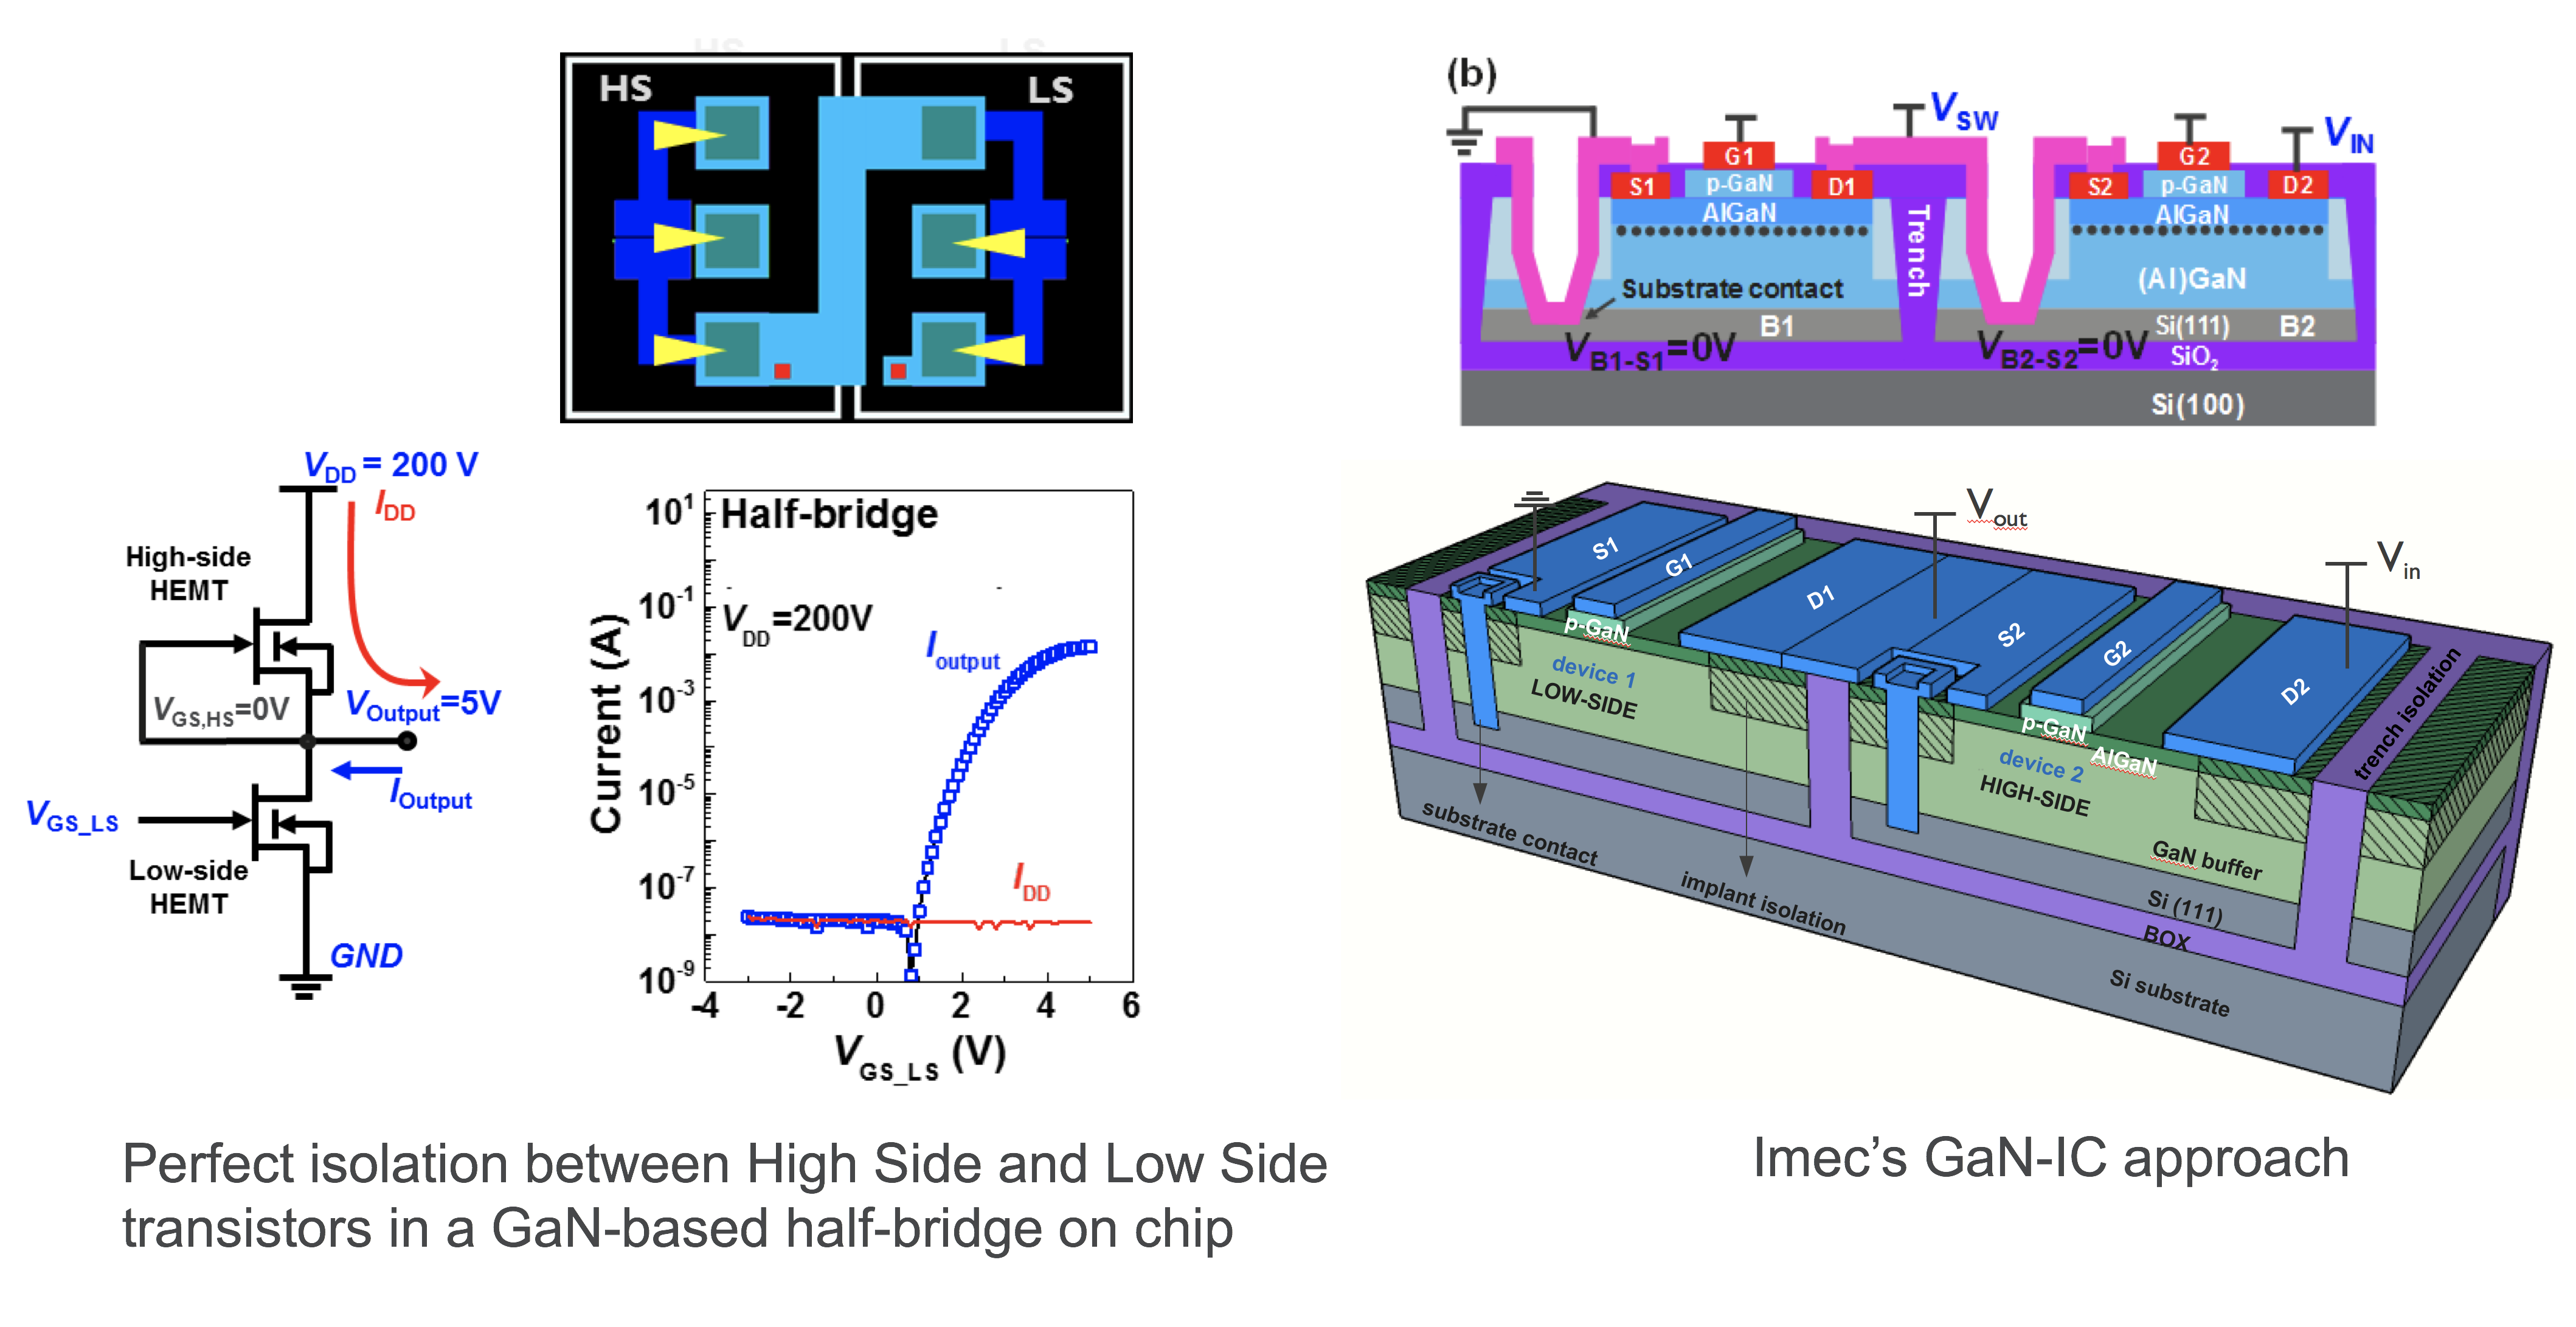 Perfect isolation between HS and LS / Imec's GaN-IC schematic concept